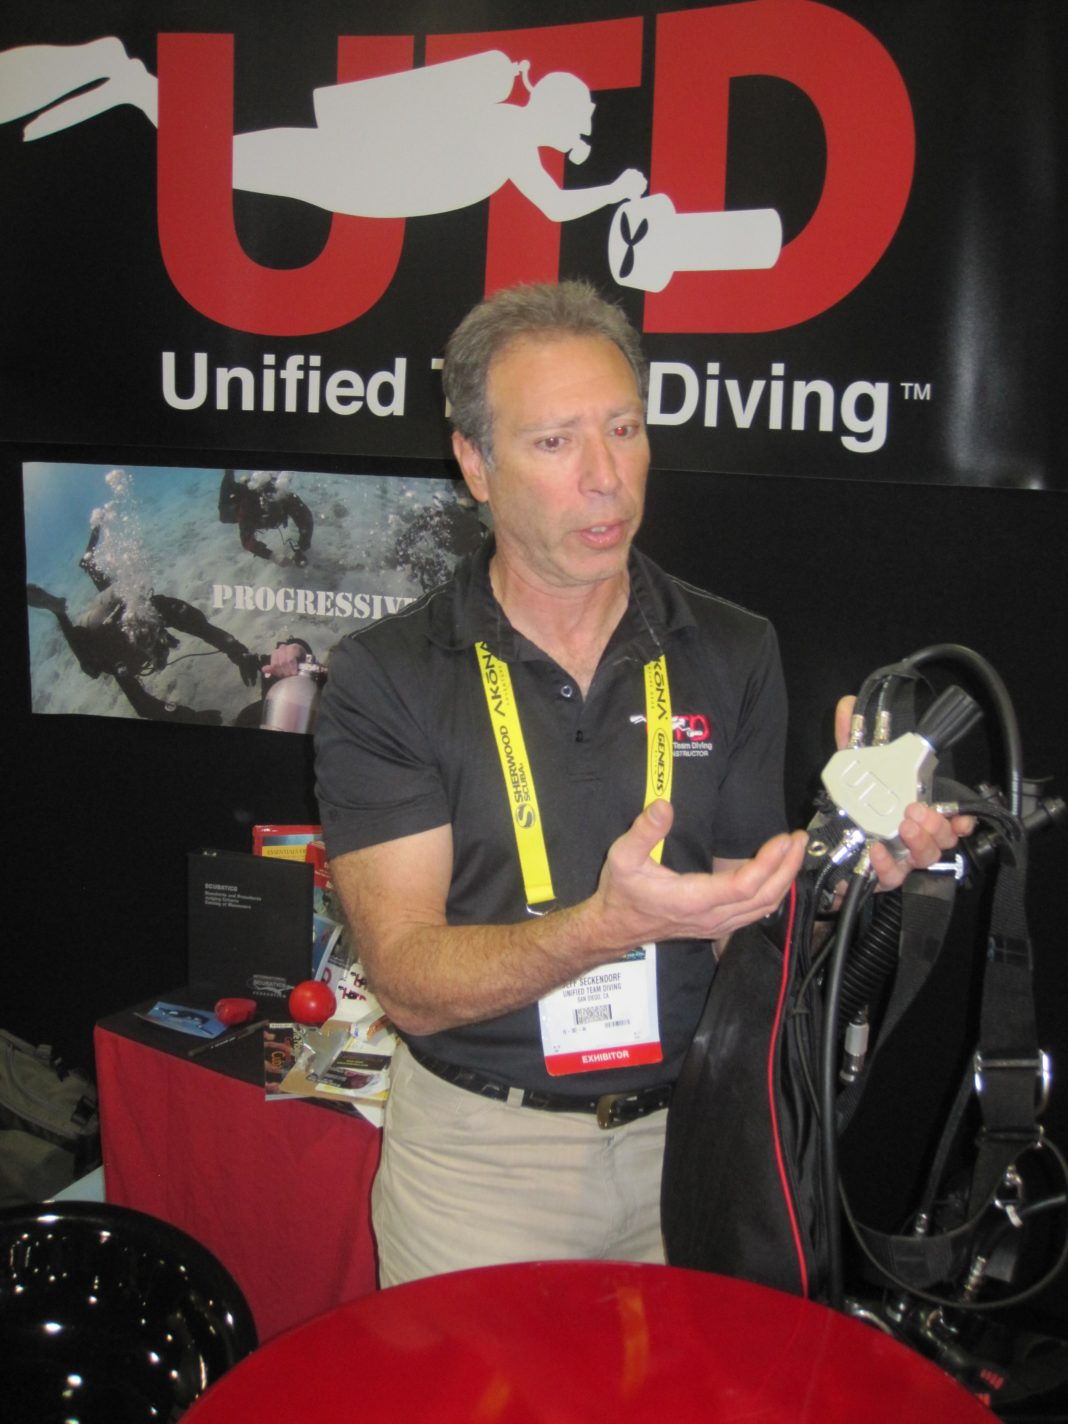 DEMA Show 2012: Unified Team Diving and the Extreme Scuba Makeover 3